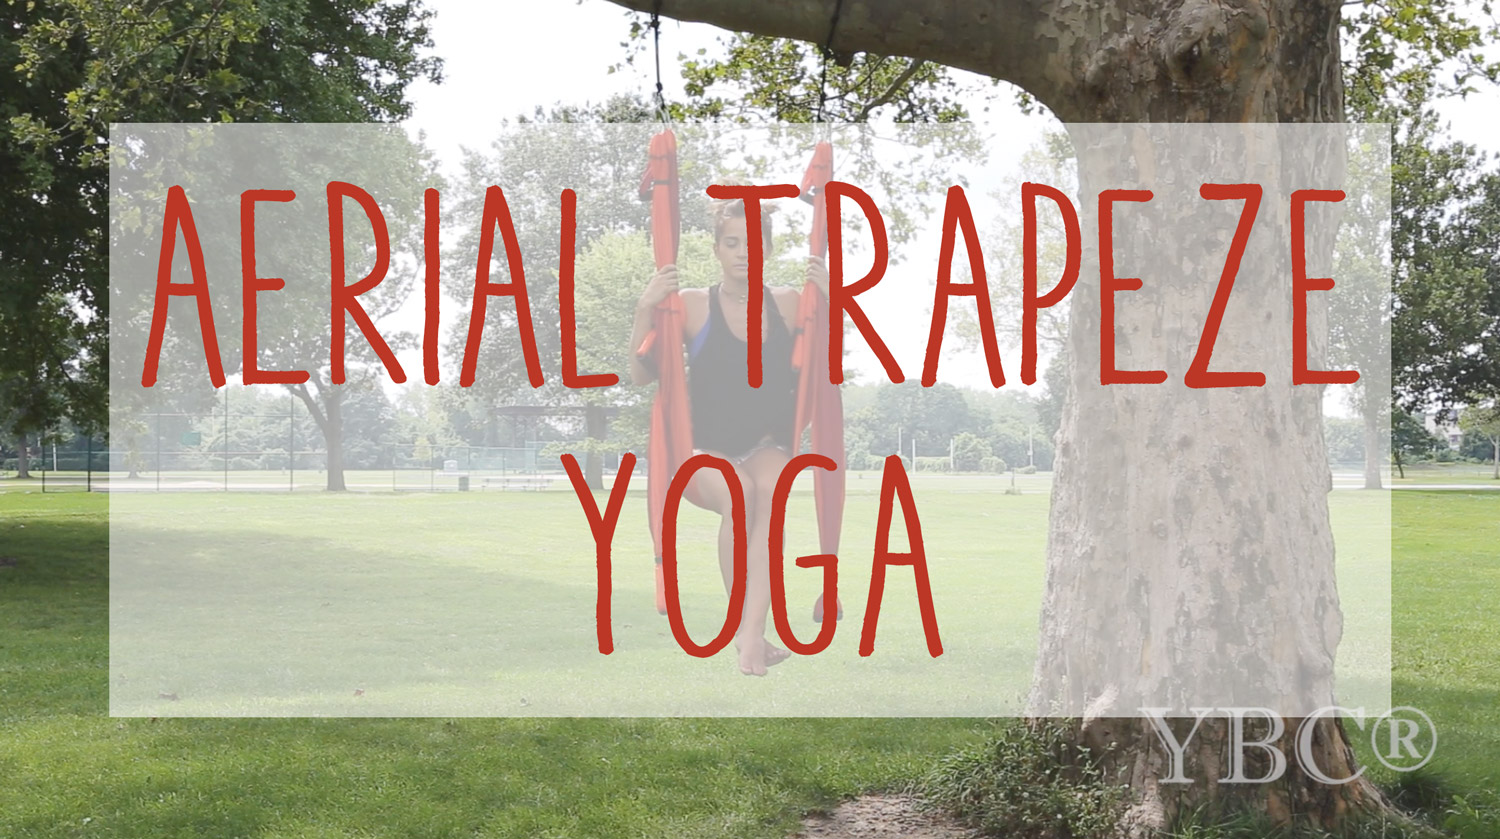 Pin now and practice later - free aerial trapeze yoga video